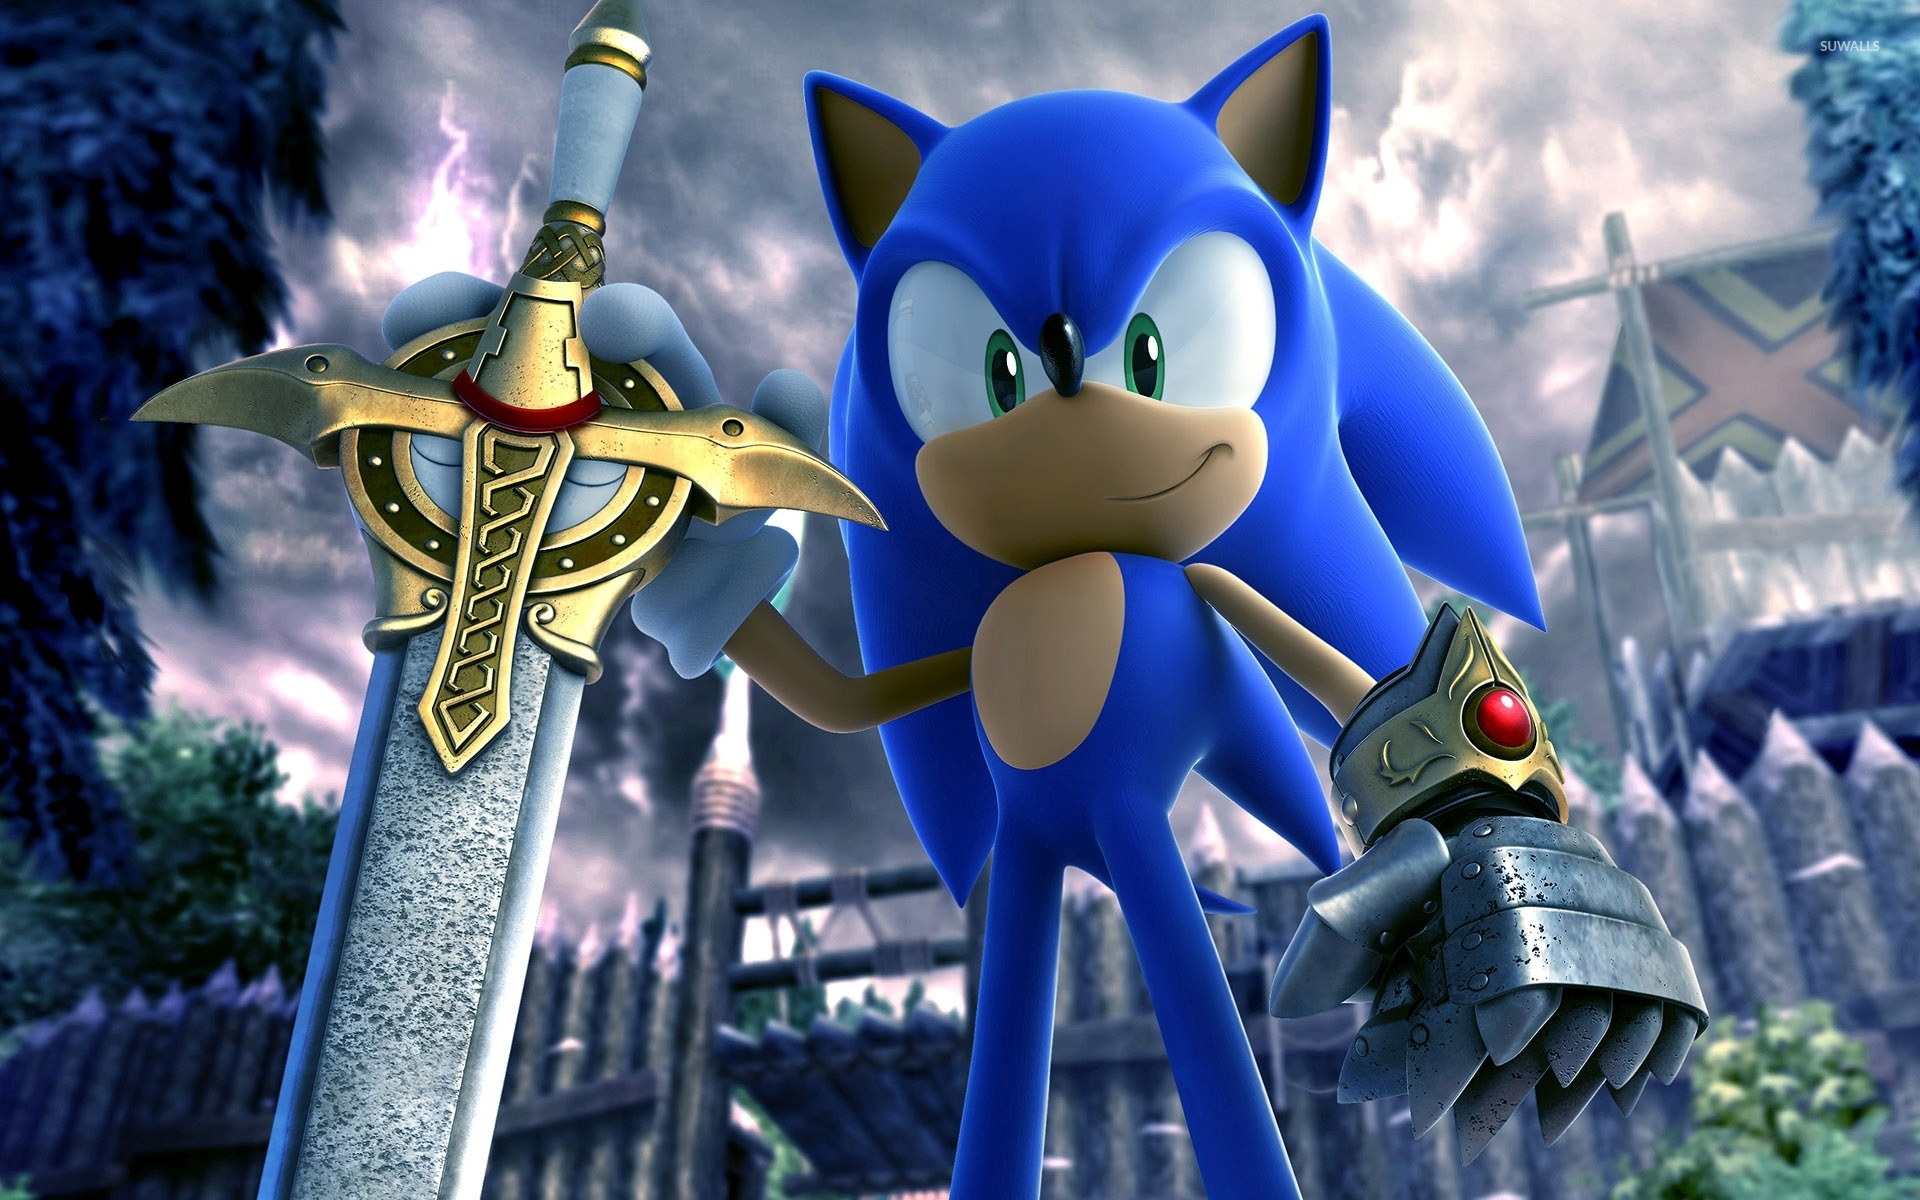 sonic the hedgehog 3 wallpaper game wallpapers 35038